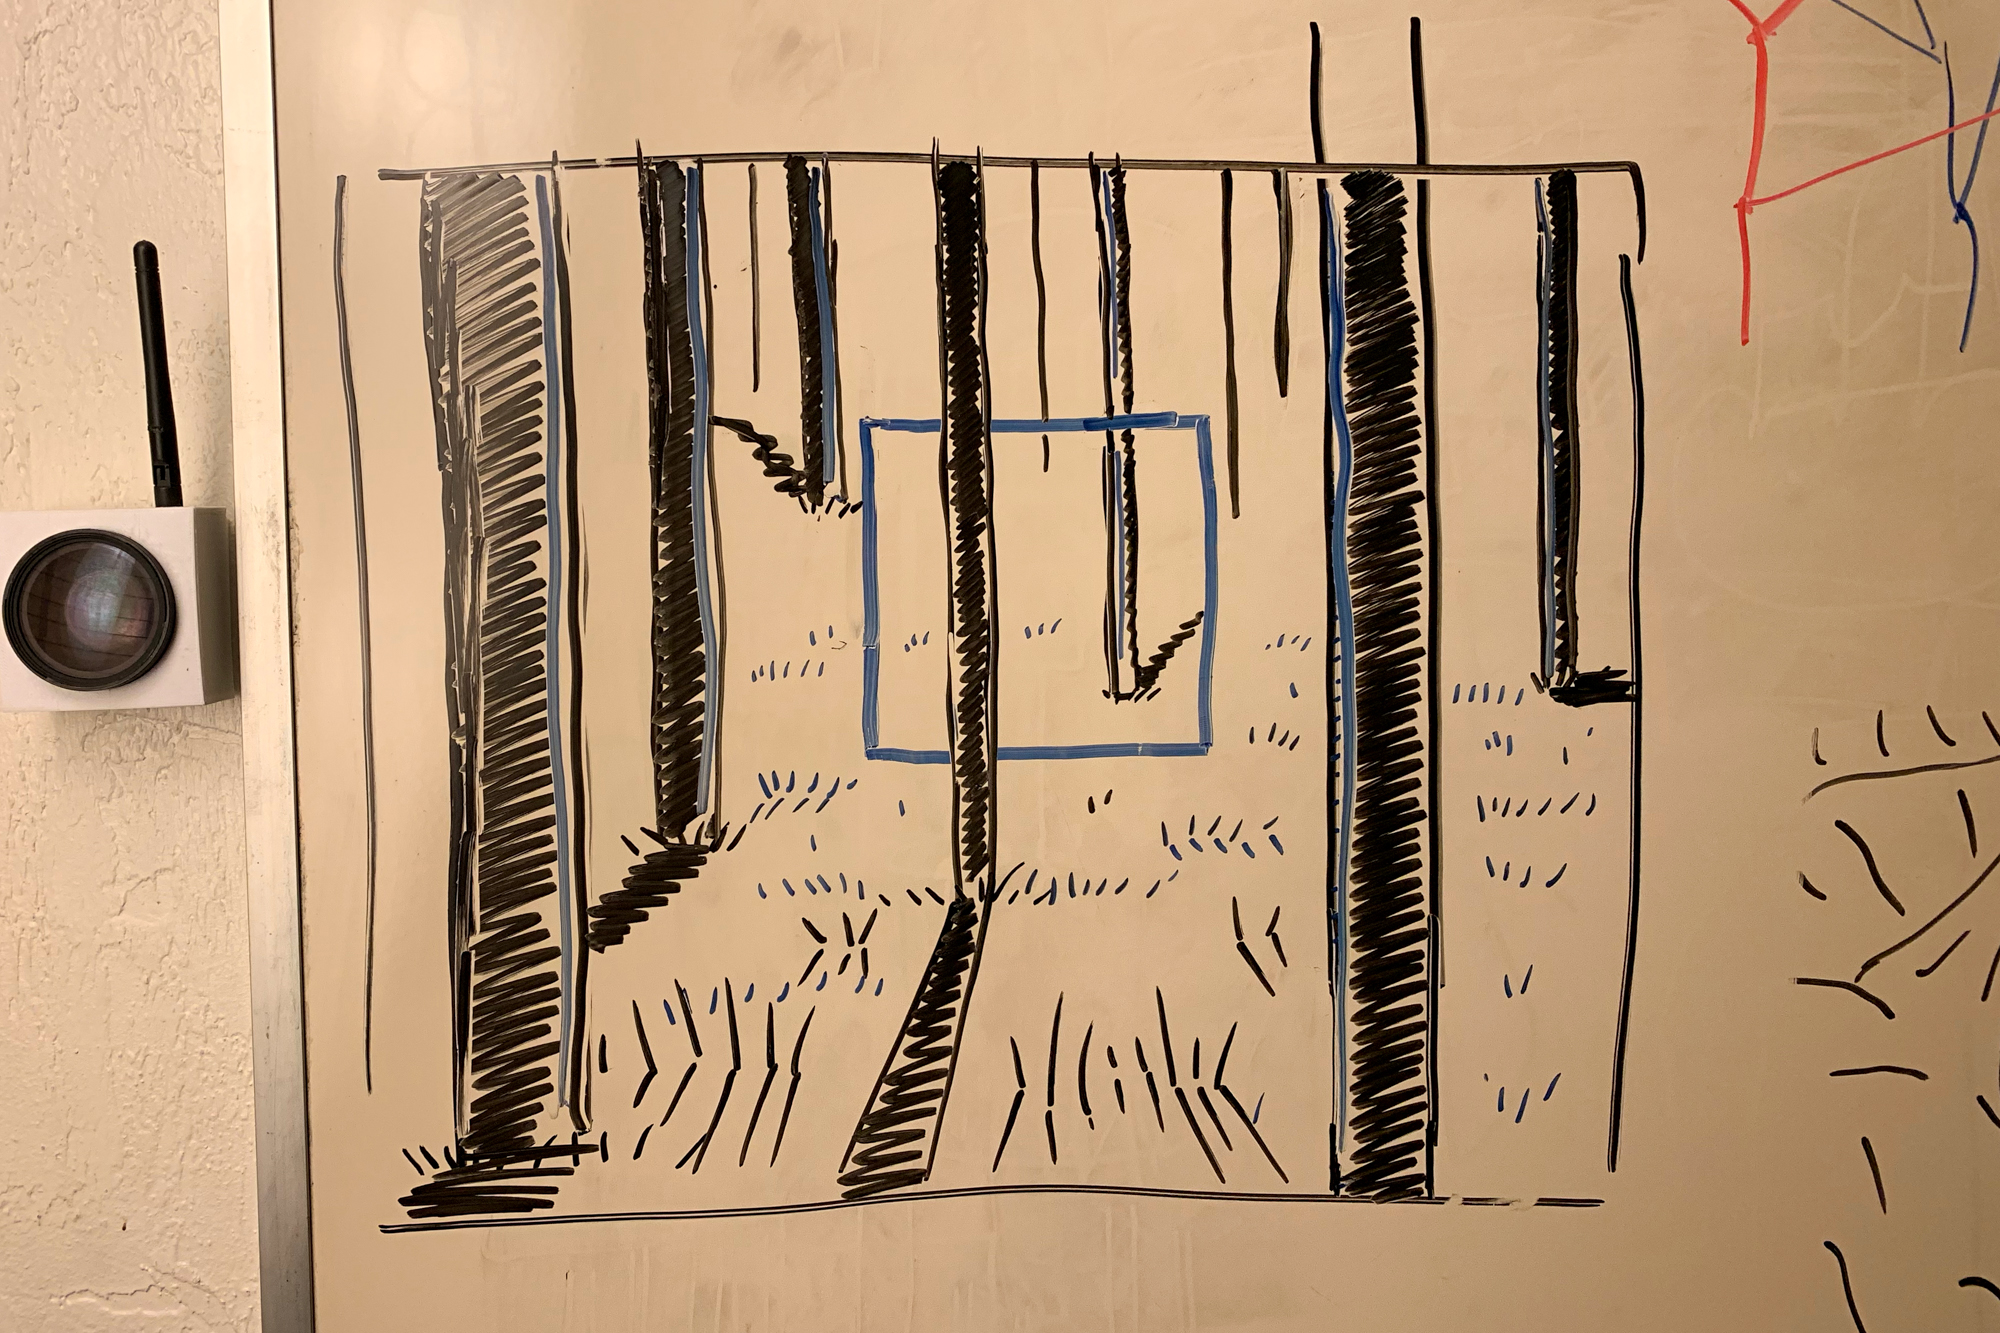 A rough draft I sketched on Alex's whiteboard during our Thursday meeting illustrates the goal: a single blue square emanating from the middle of a dense pine forest.